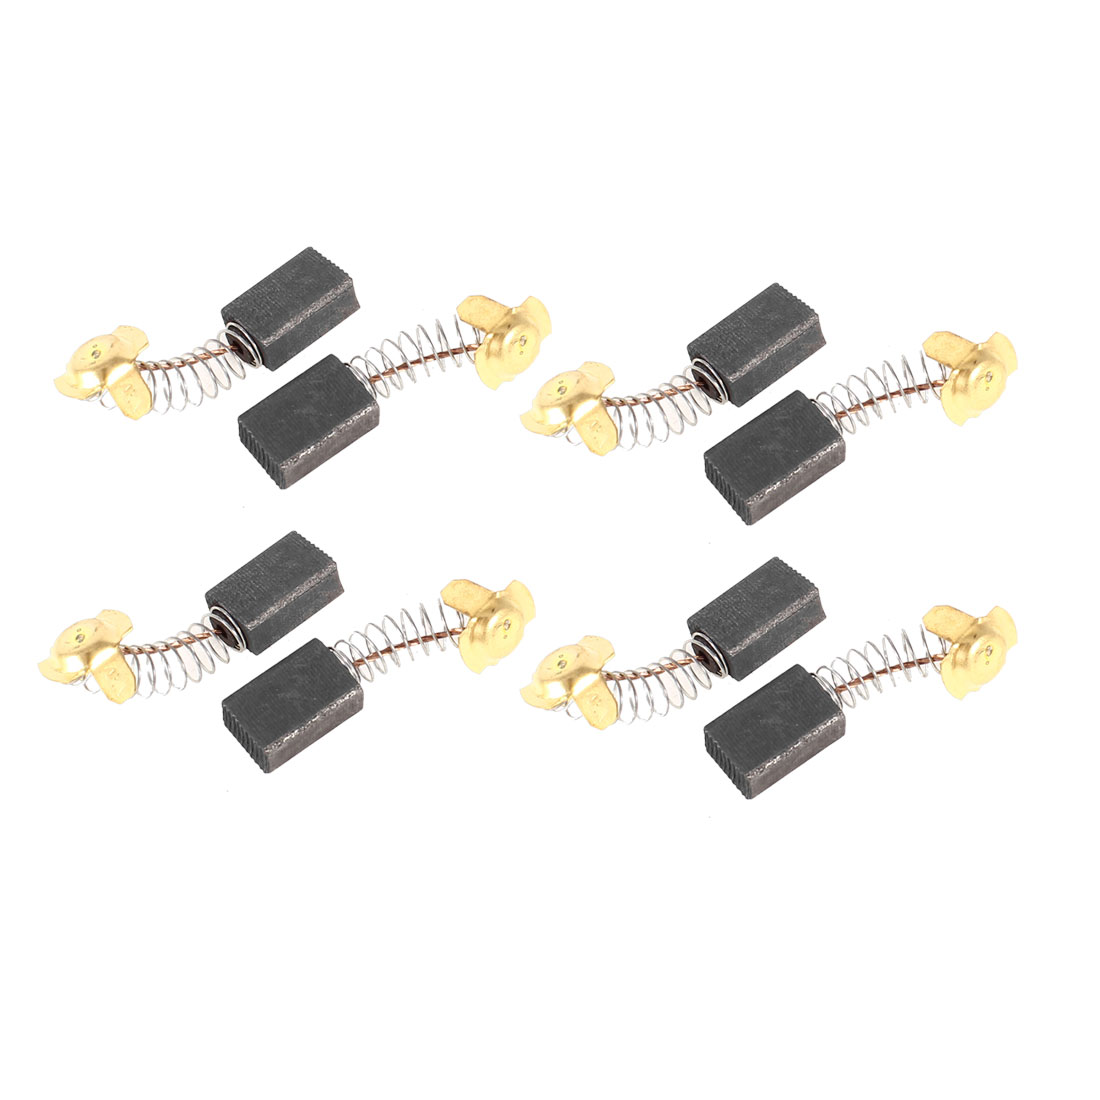 40mm Total Length Motor Carbon Brushes Replacement 8 Pcs